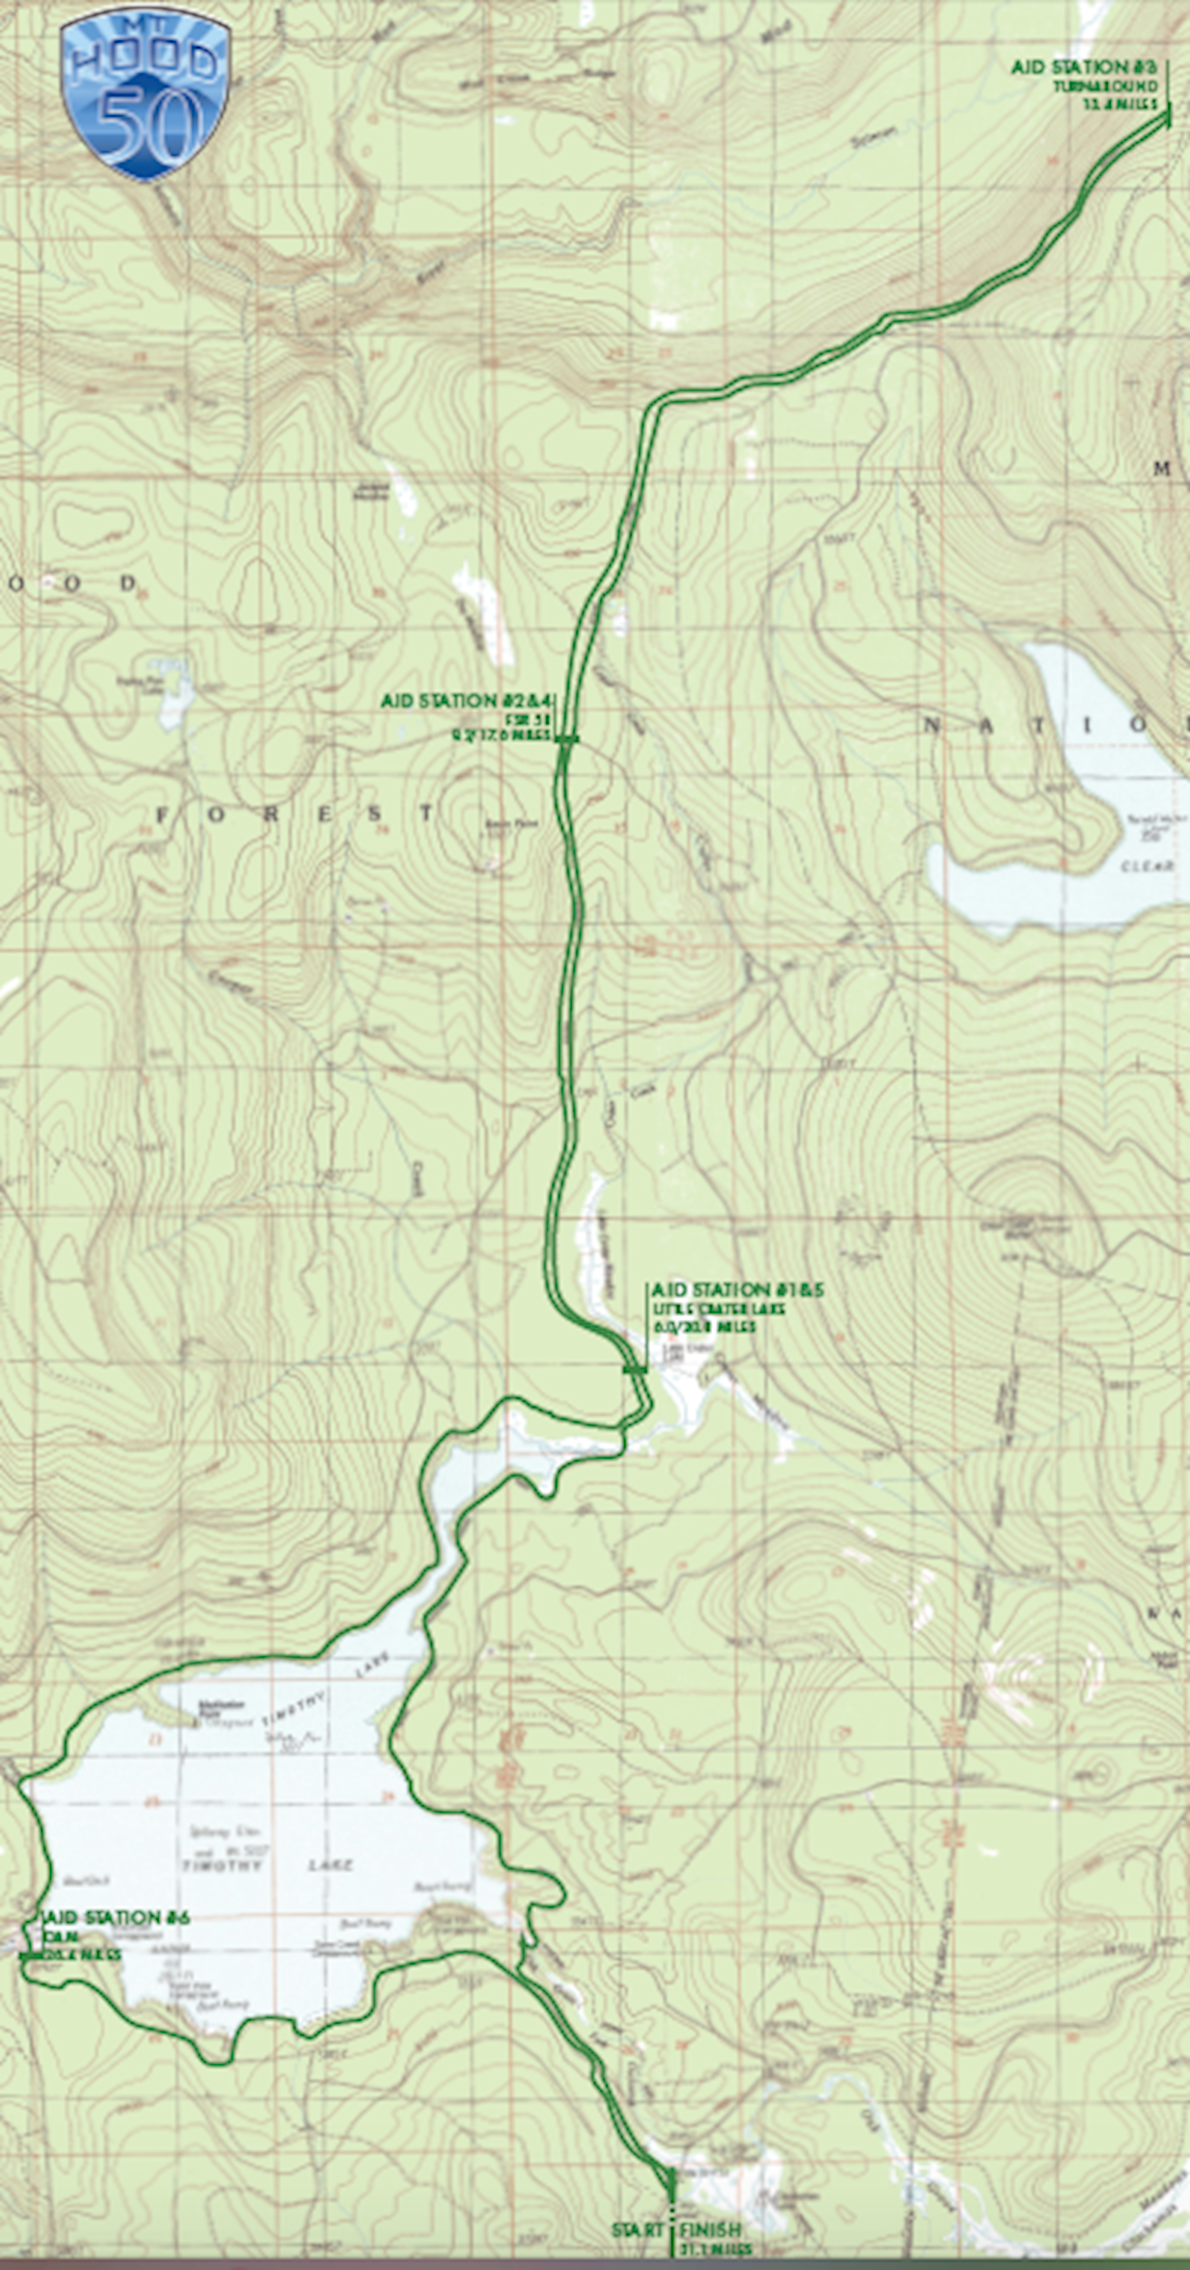 Mt. Hood 50km Route Map